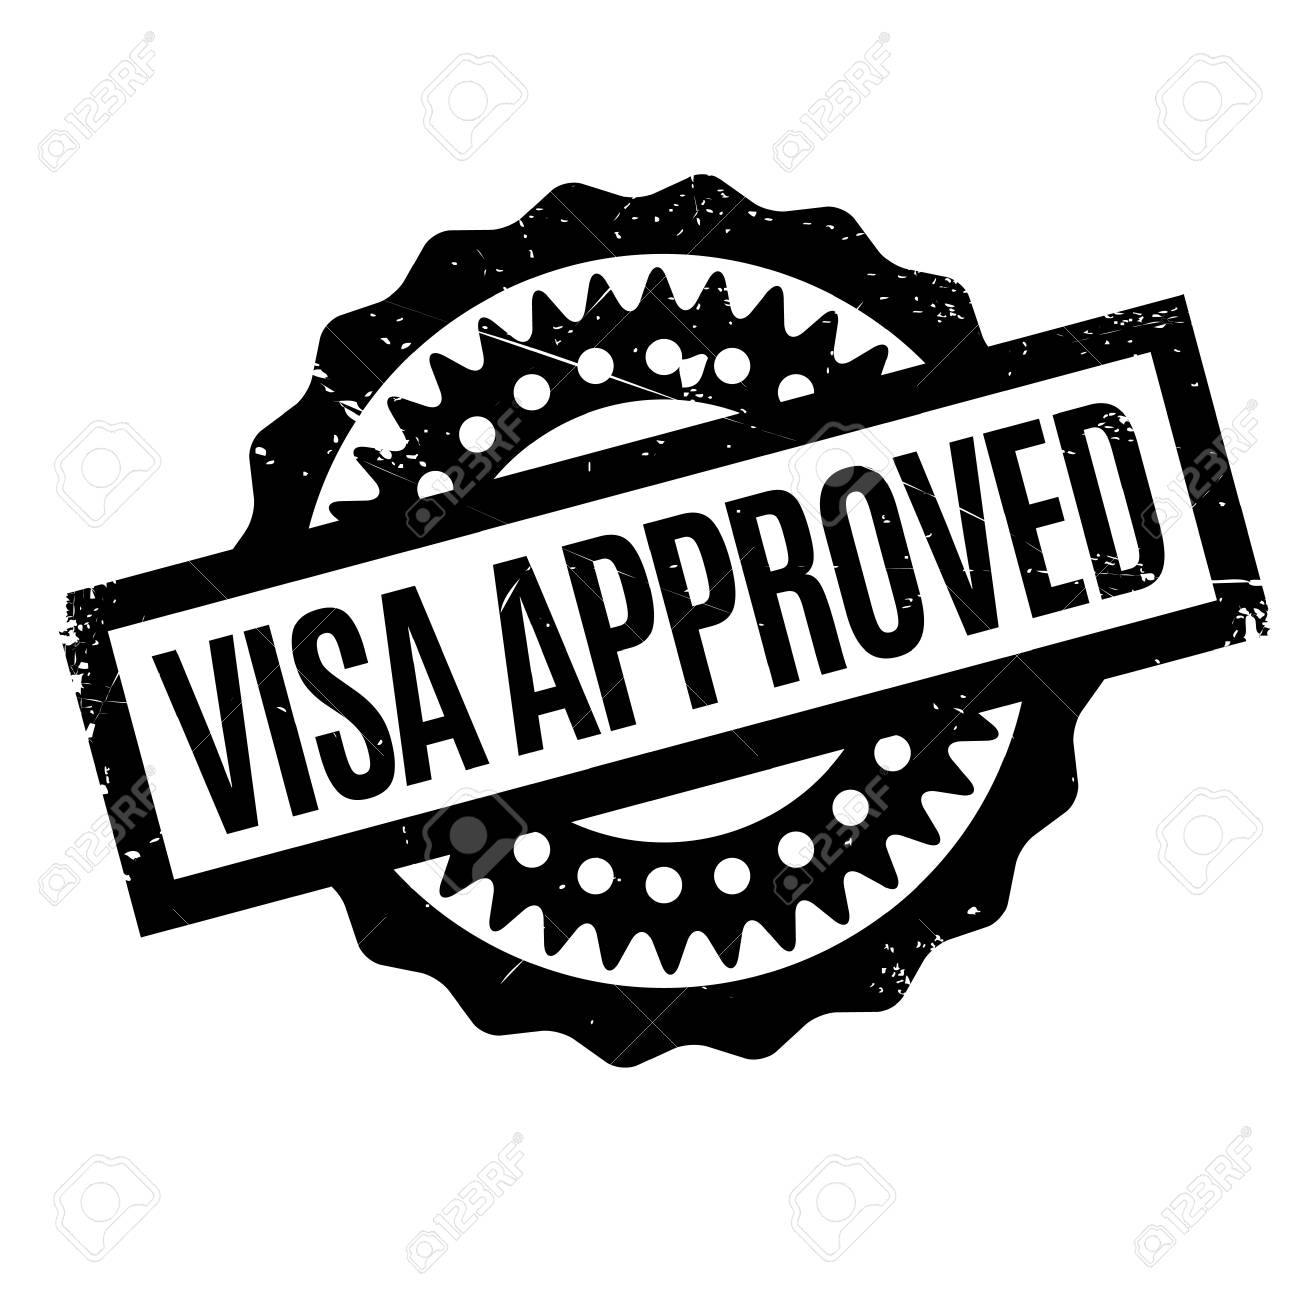 Visa approved rubber stamp grunge design with dust scratches visa approved rubber stamp grunge design with dust scratches effects can be easily removed biocorpaavc Choice Image